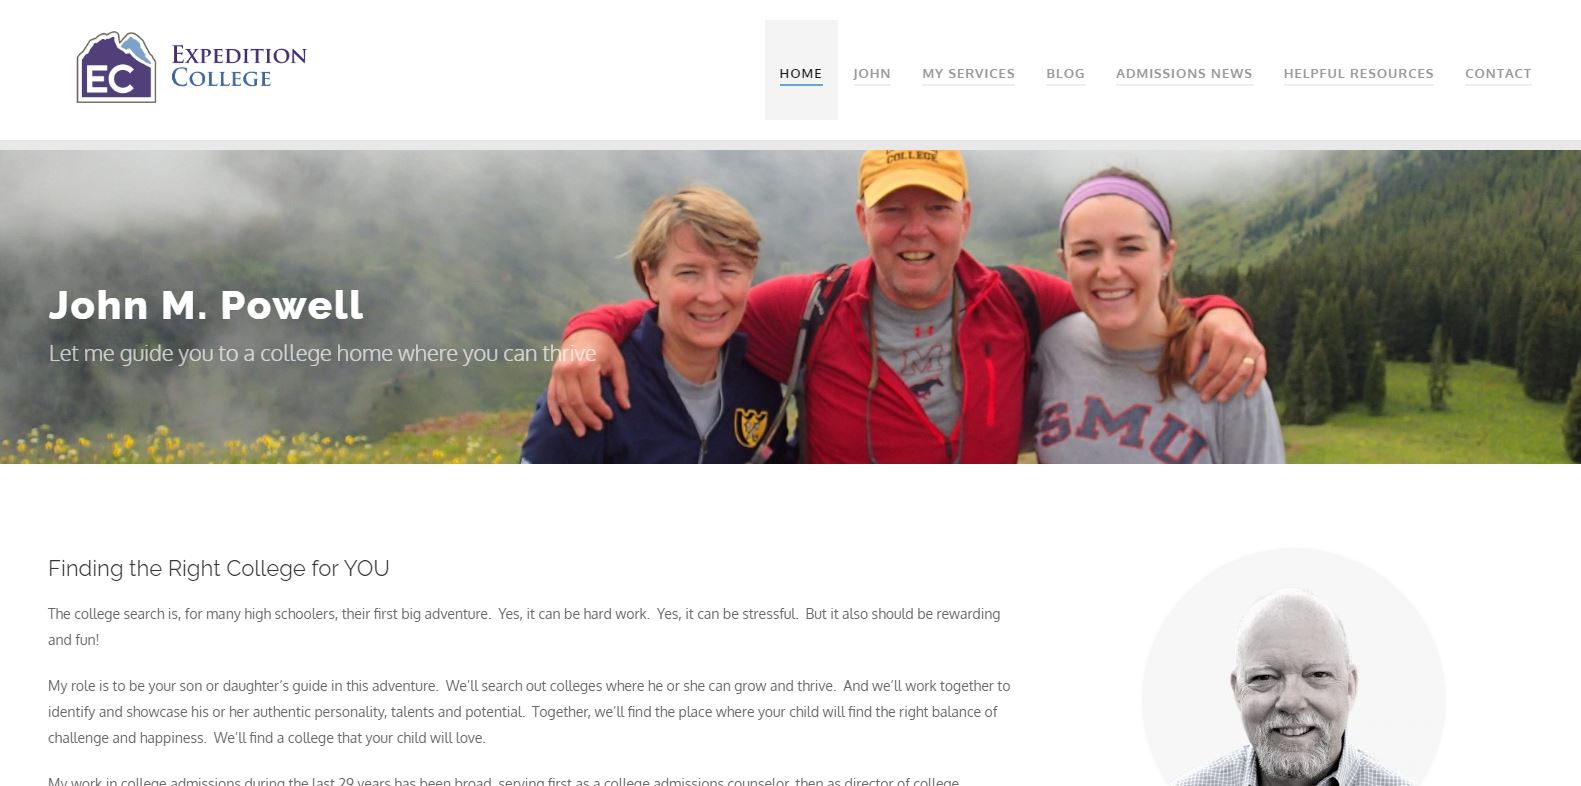 Expedition College Home Page